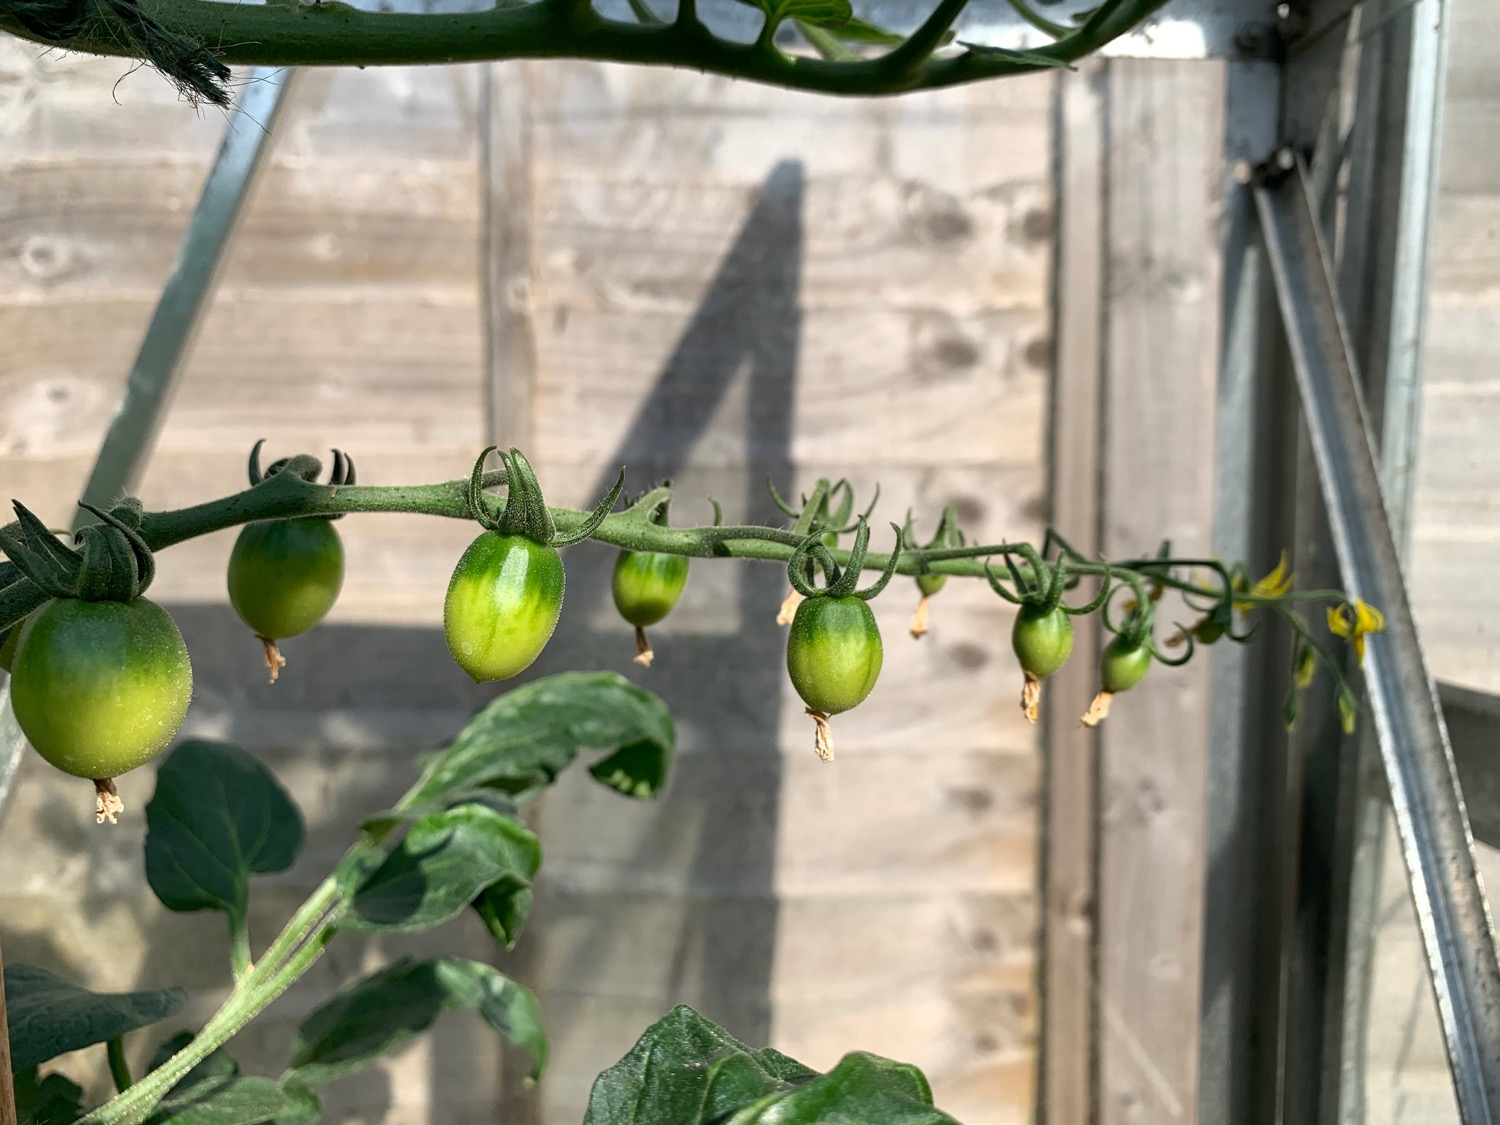 Young green tomatoes on the vine